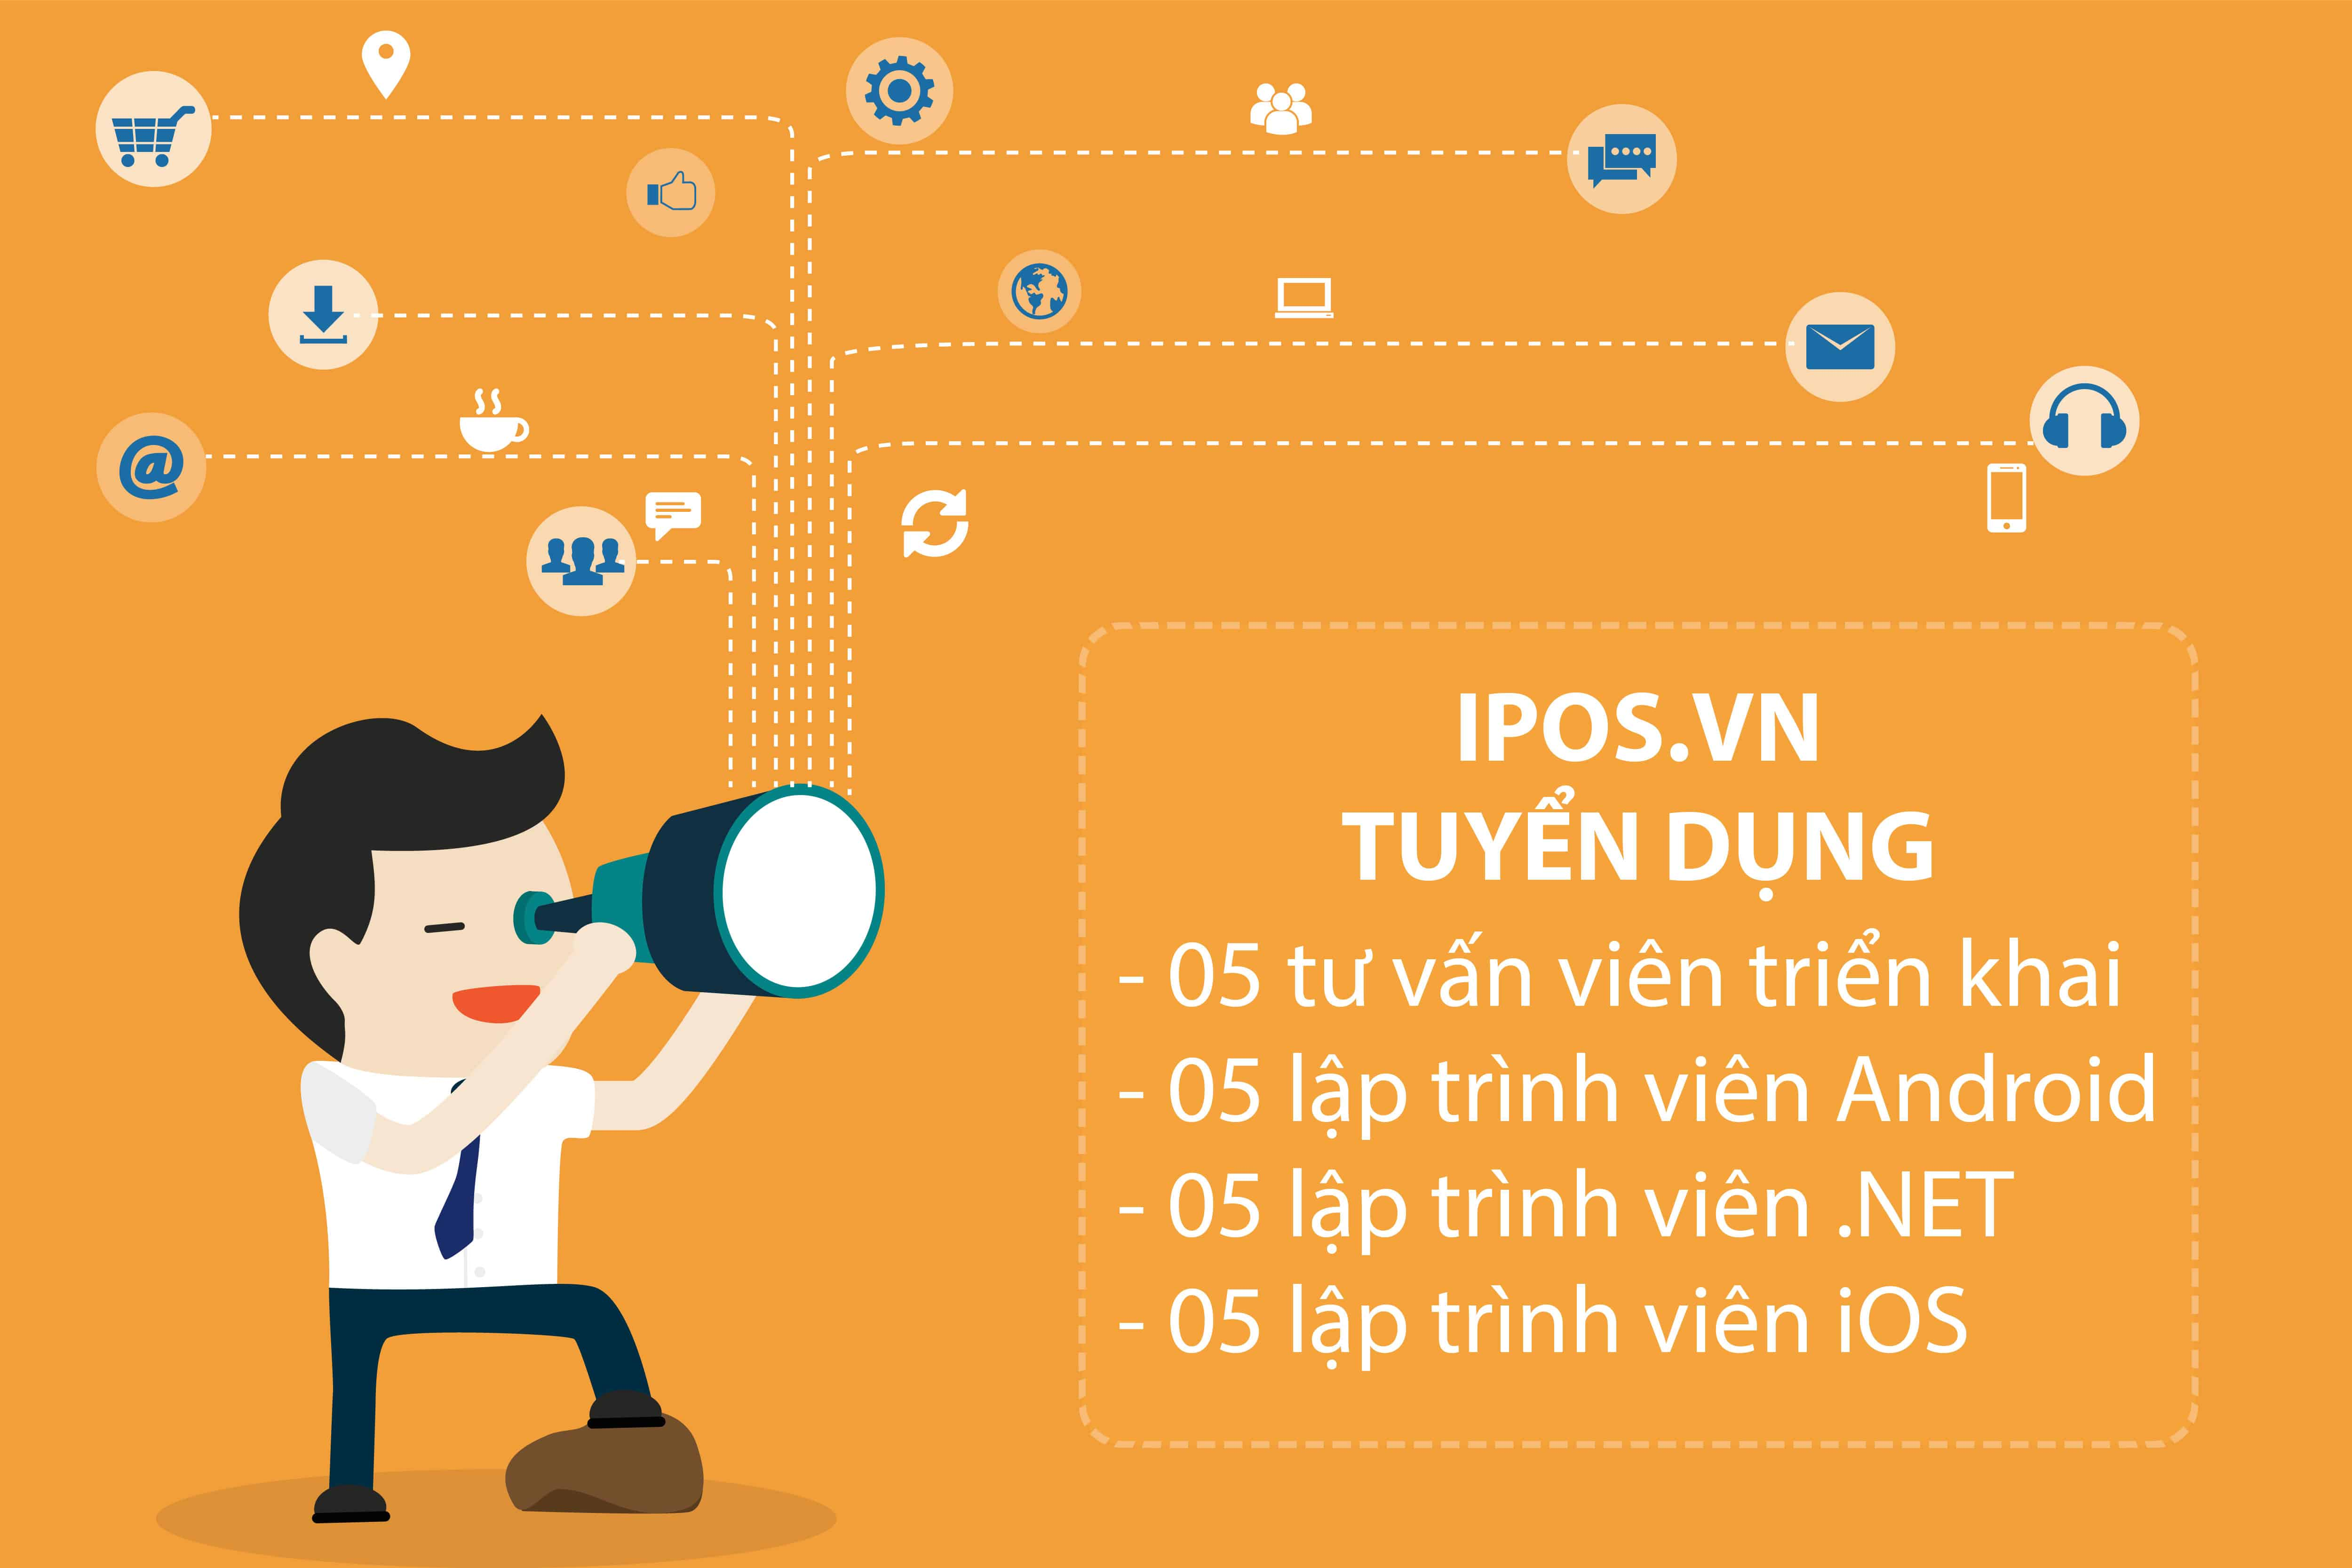 iPOS.VN tuyển dụng 1